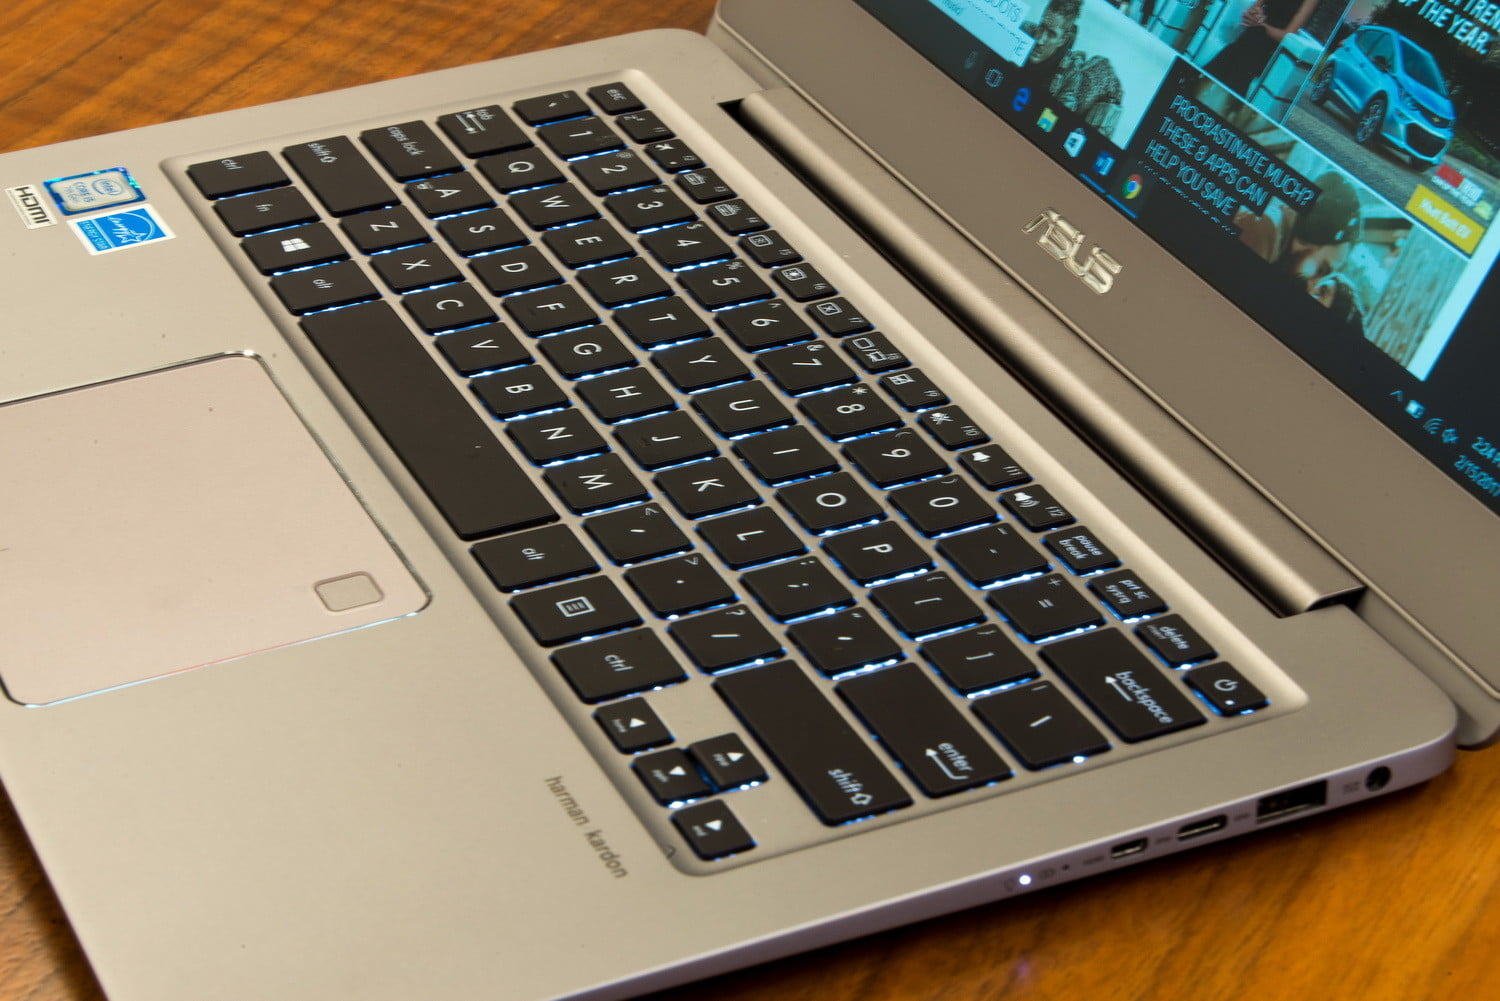 Asus Zenbook UX330UA Laptop Review The Only Laptop You